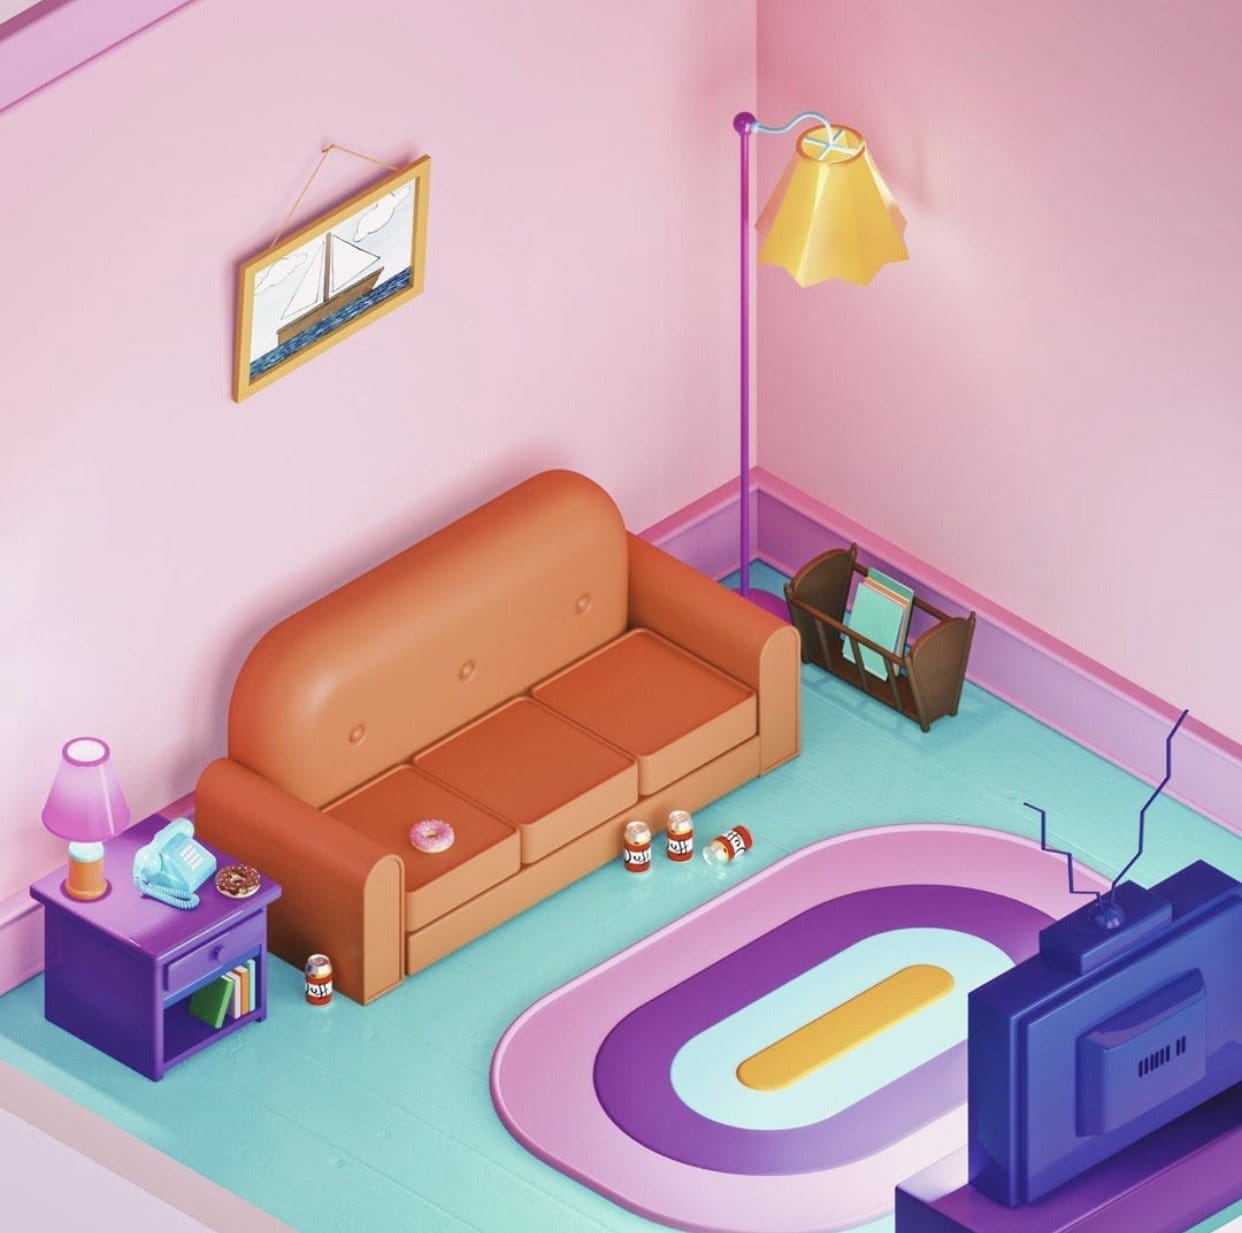 Isometric House by Amrit Pal Singh